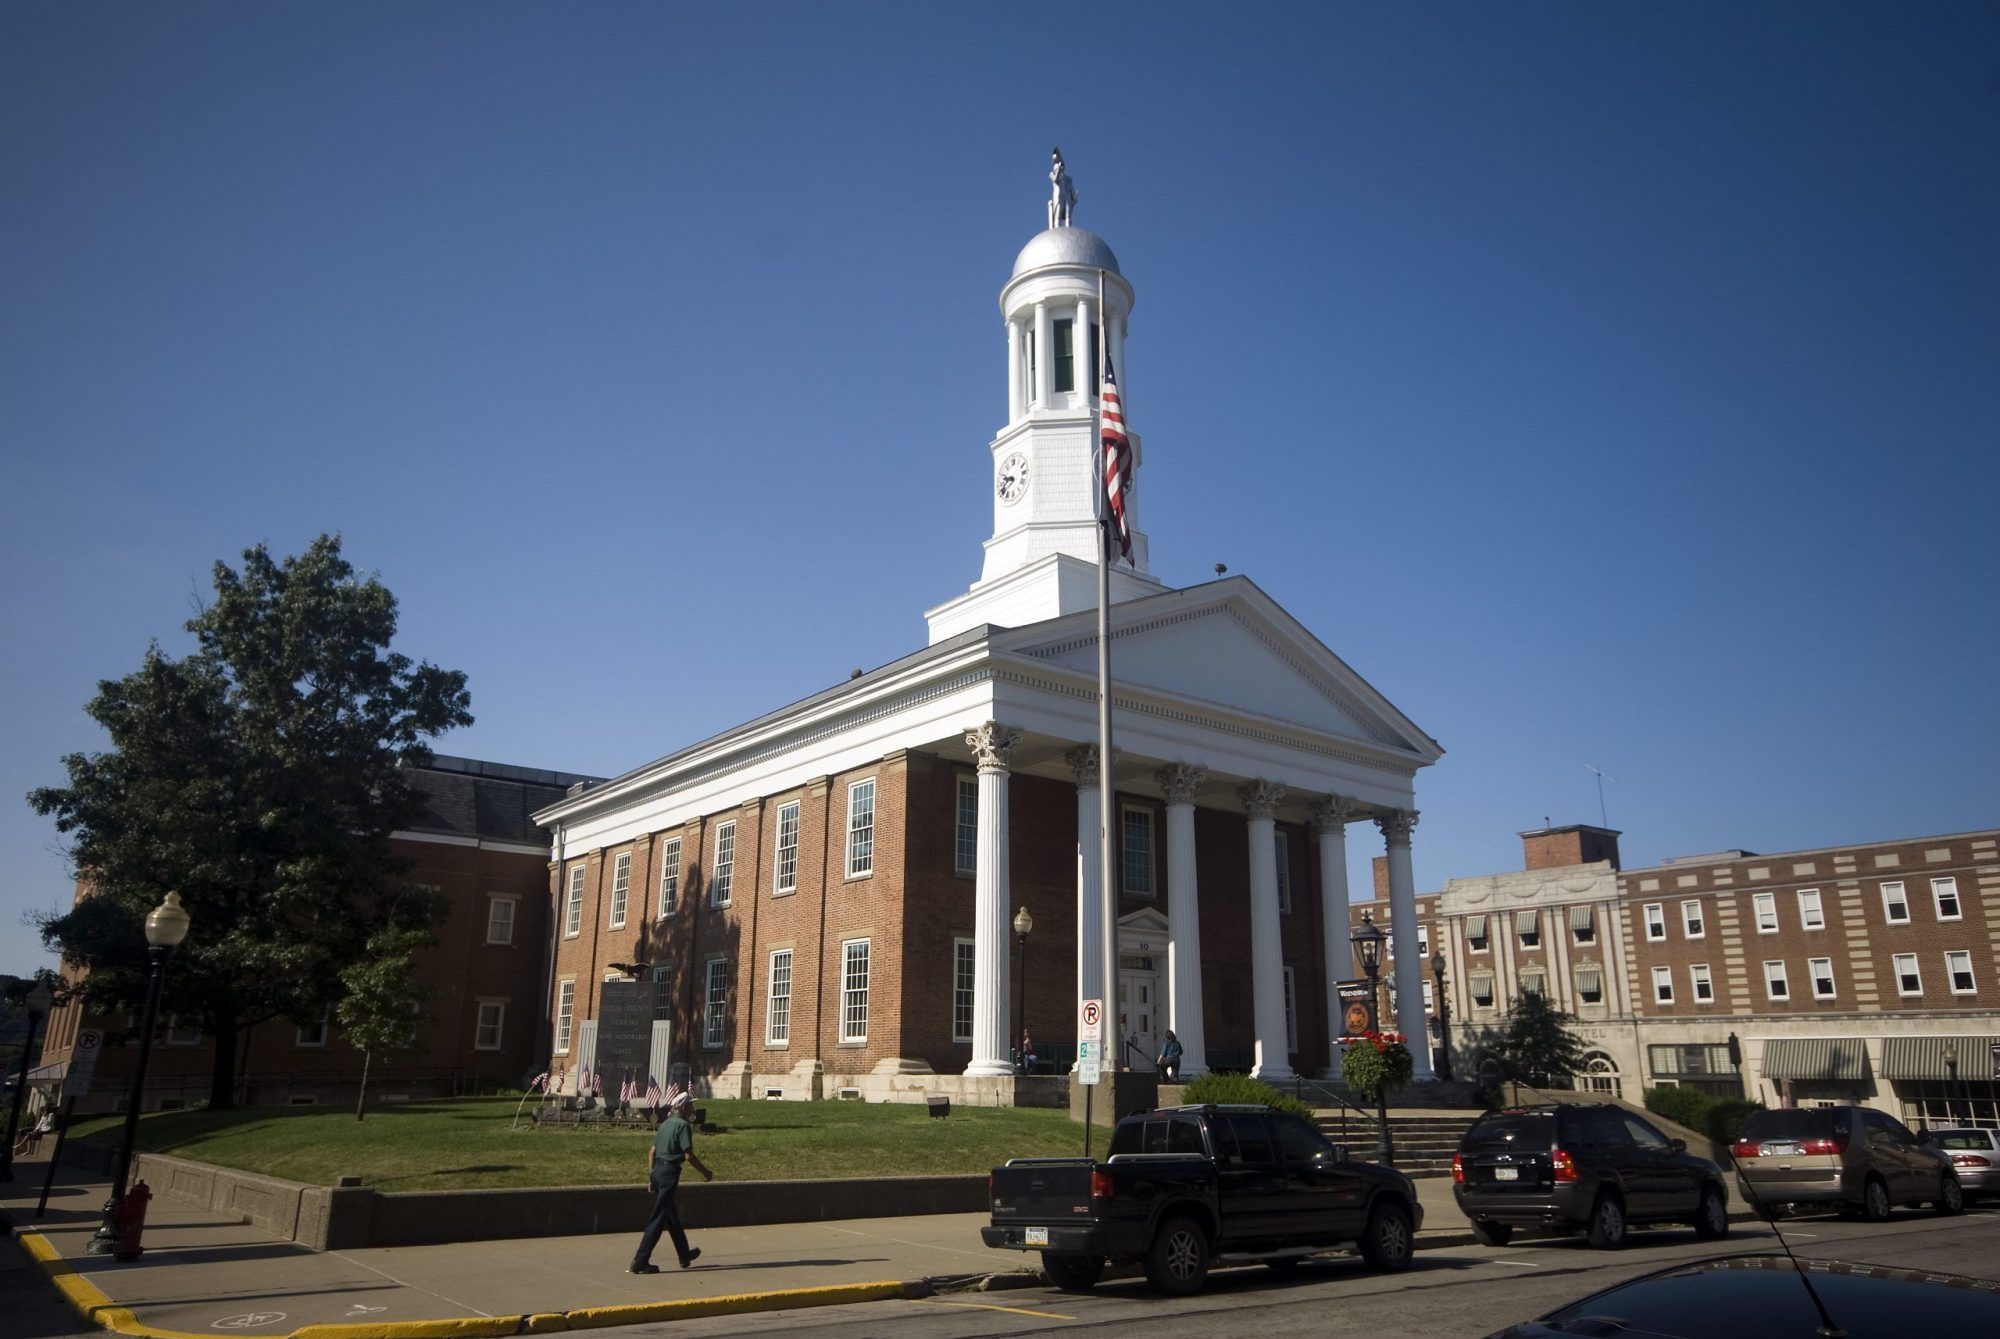 Daylight photo of the Greene County Courthouse